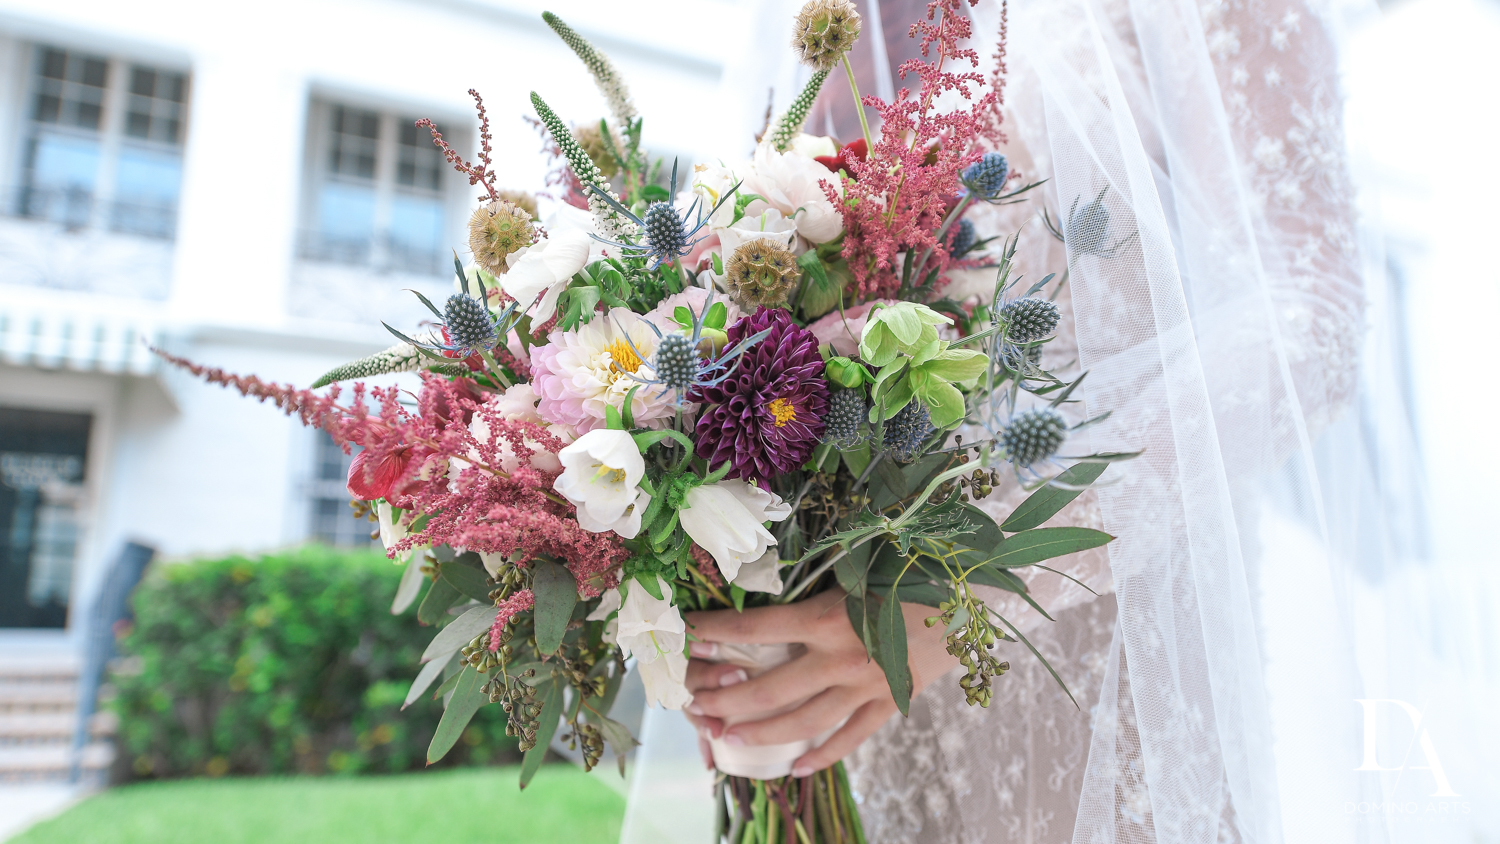 bouquet ideas at Vintage Garden Wedding at Flagler Museum Palm Beach by Domino Arts Photography